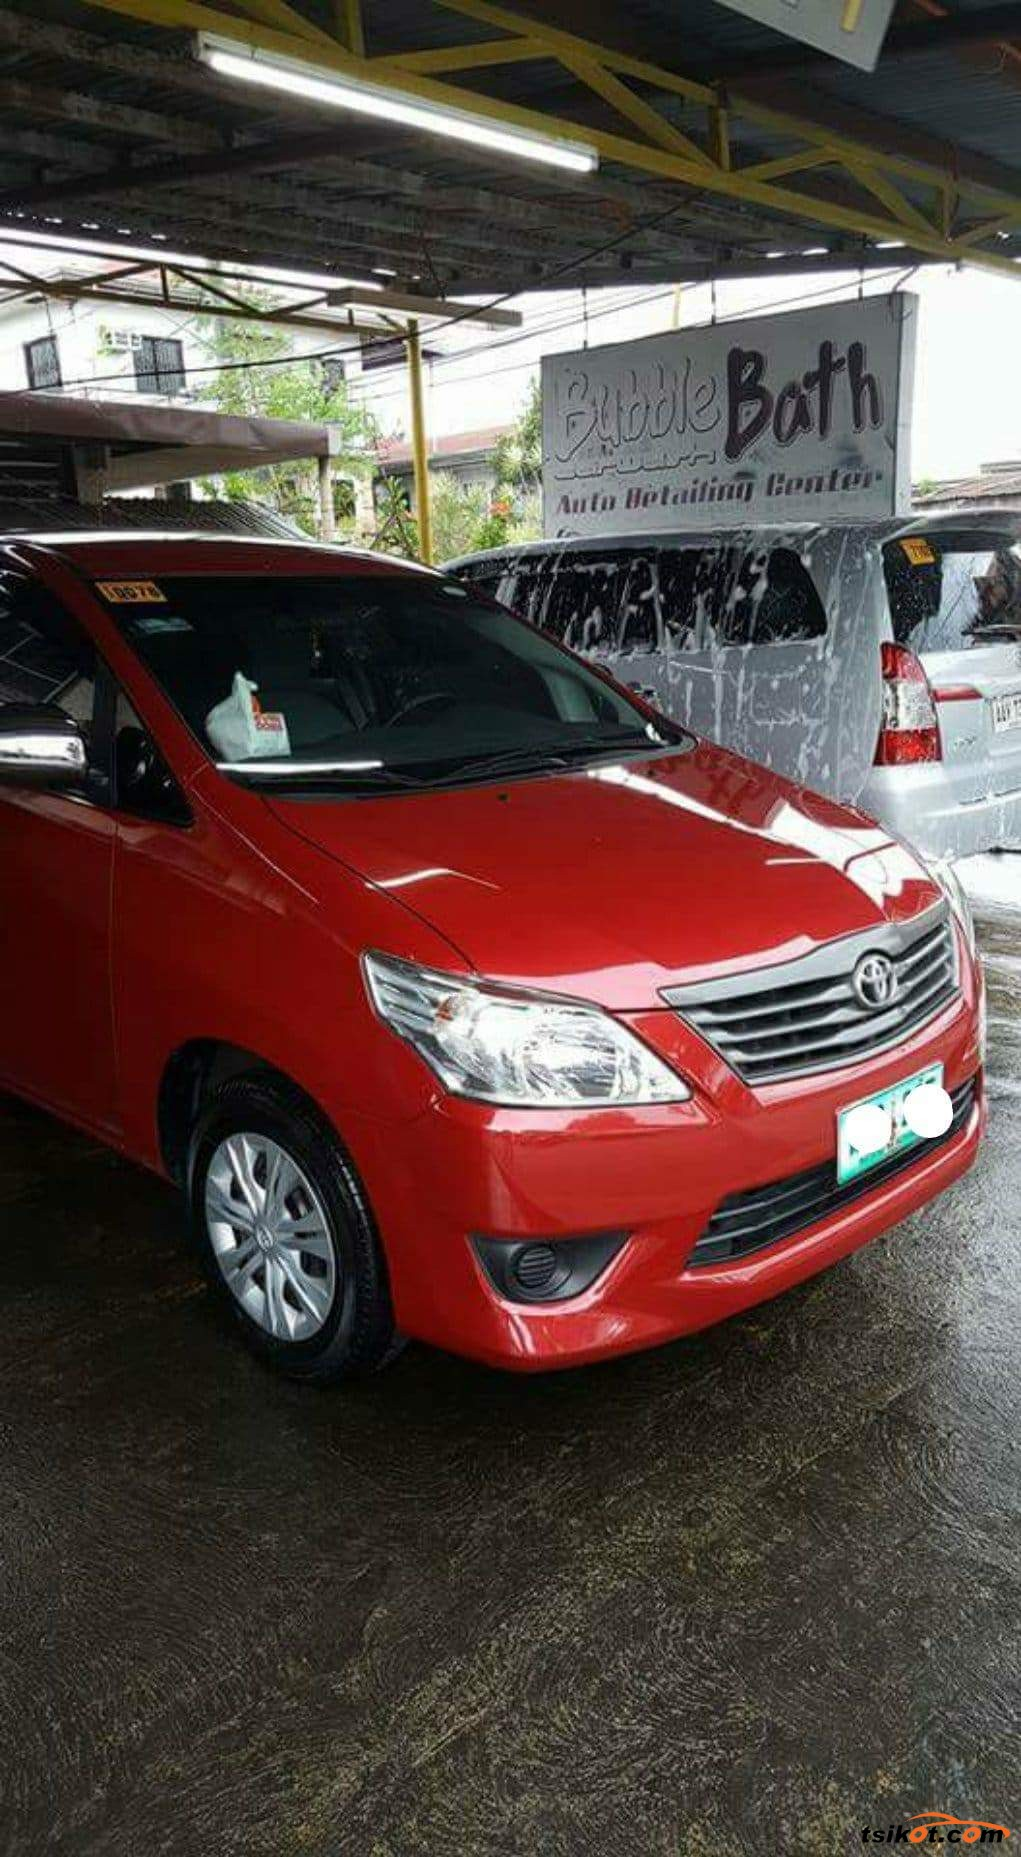 Mazda 3 Hatchback Used >> Toyota Innova 2013 - Car for Sale Metro Manila